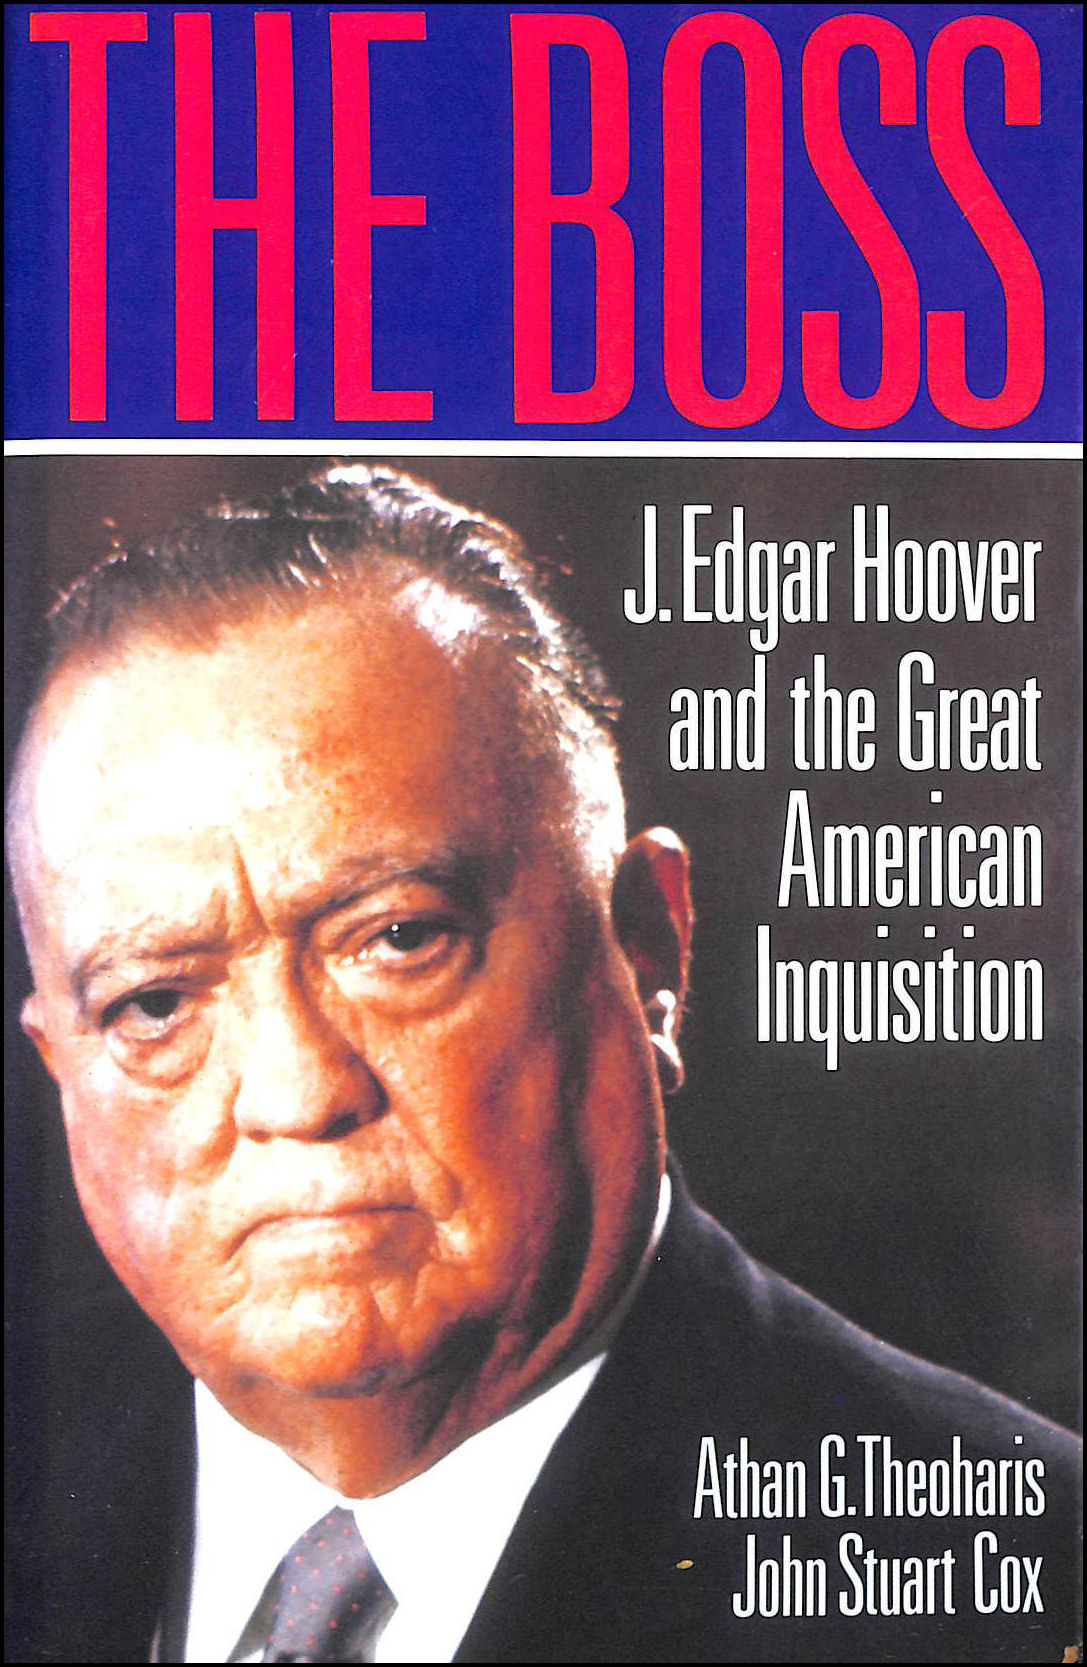 Image for The boss: J Edgar Hoover and the Great American Inquisition